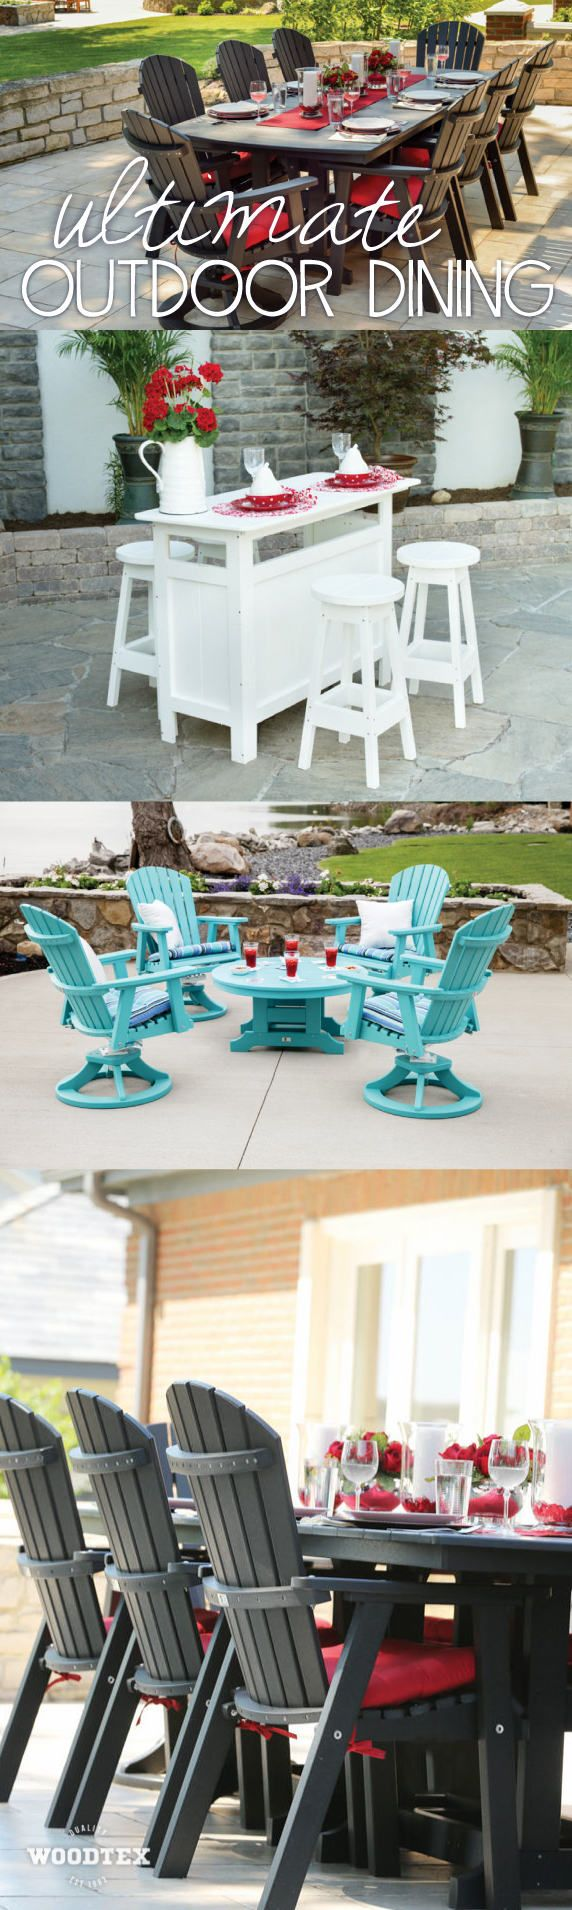 12 best authorized dealer pins images on pinterest backyard furniture garden furniture outlet. Black Bedroom Furniture Sets. Home Design Ideas